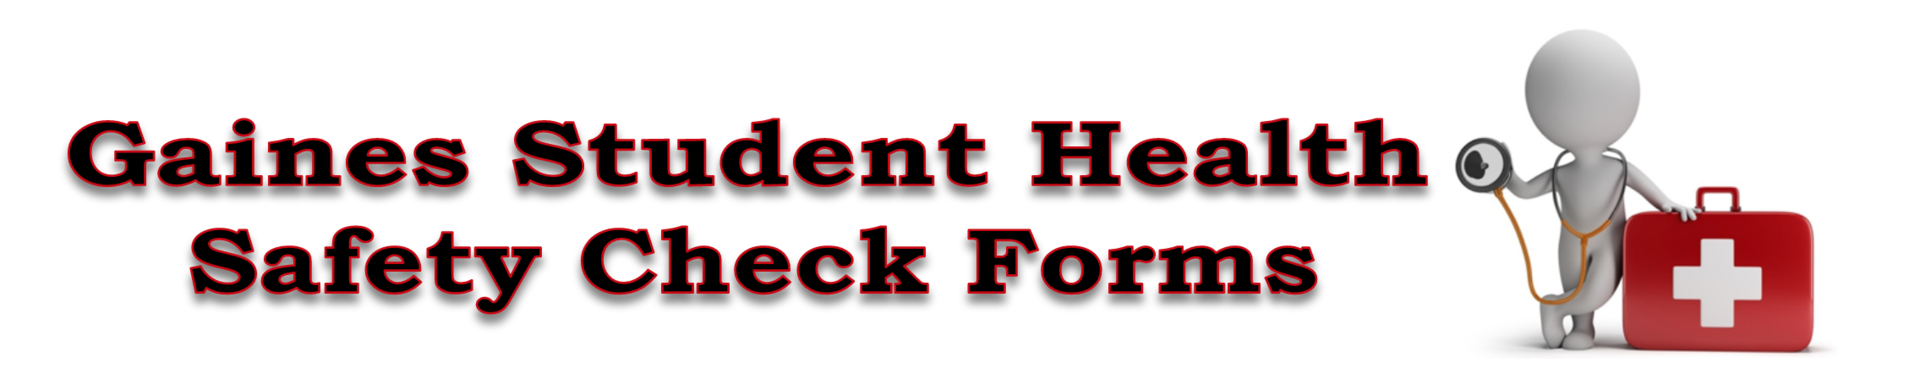 Page Title: Gaines Student Health Safety Check Forms